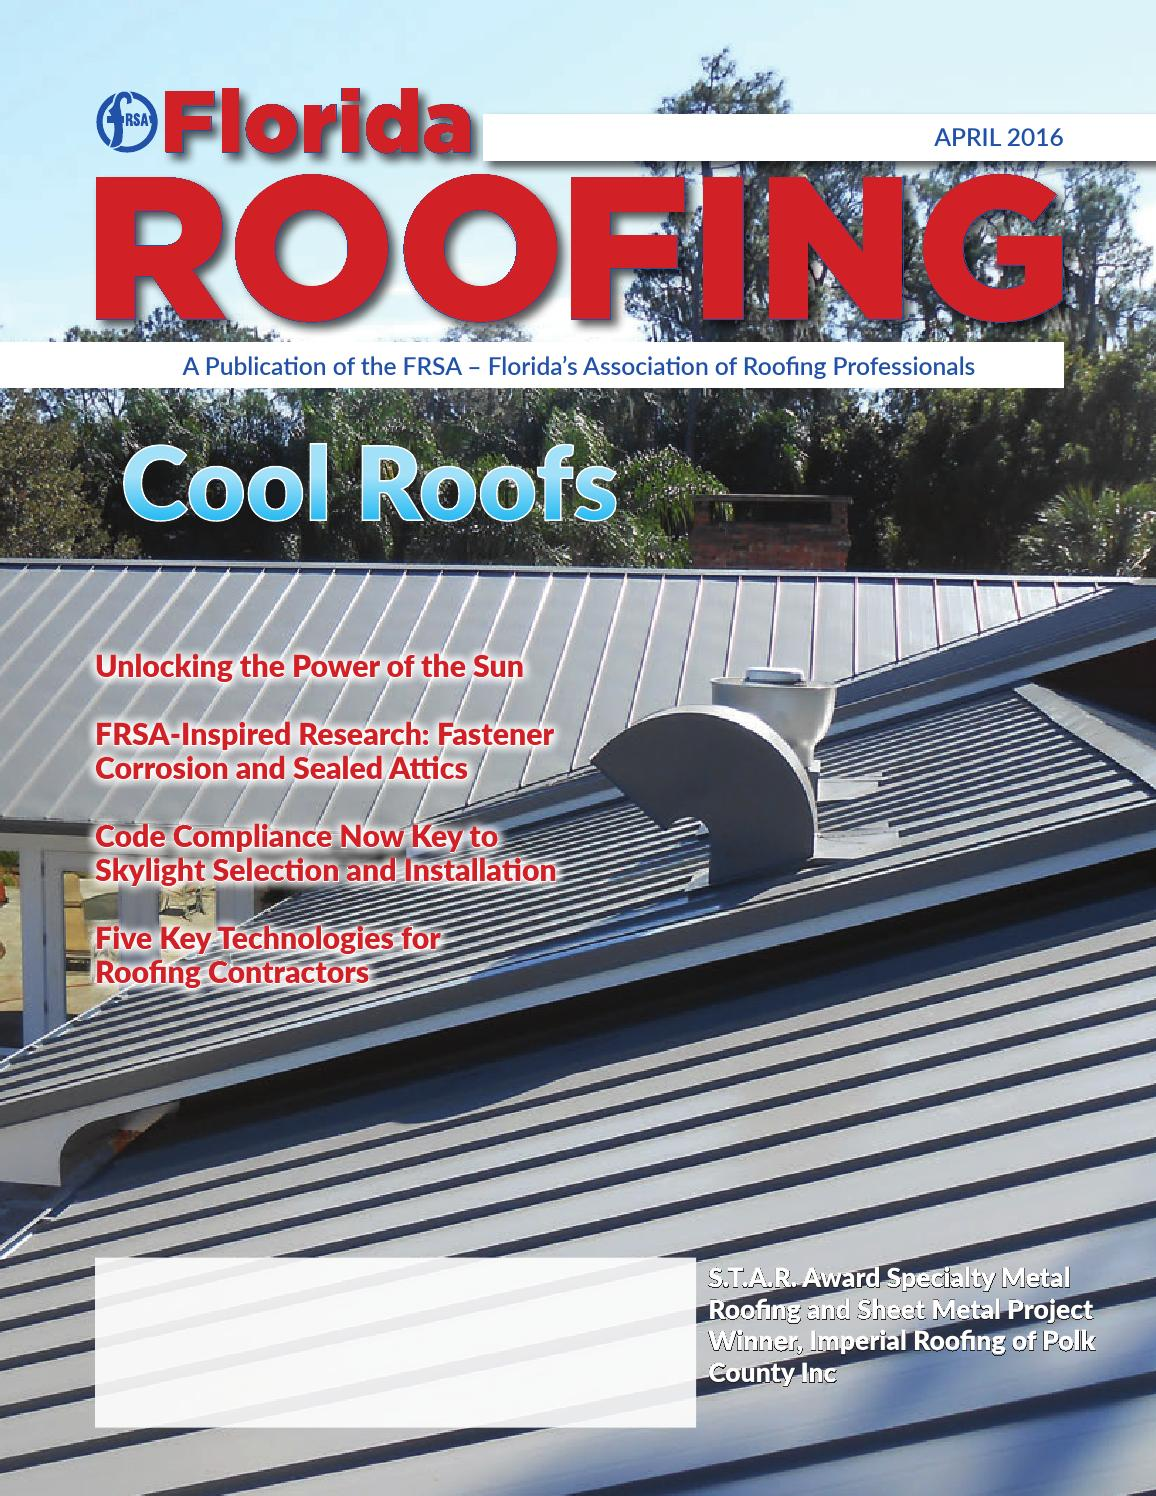 Florida Roofing Magazine   April 2016 By Florida Roofing Magazine   Issuu